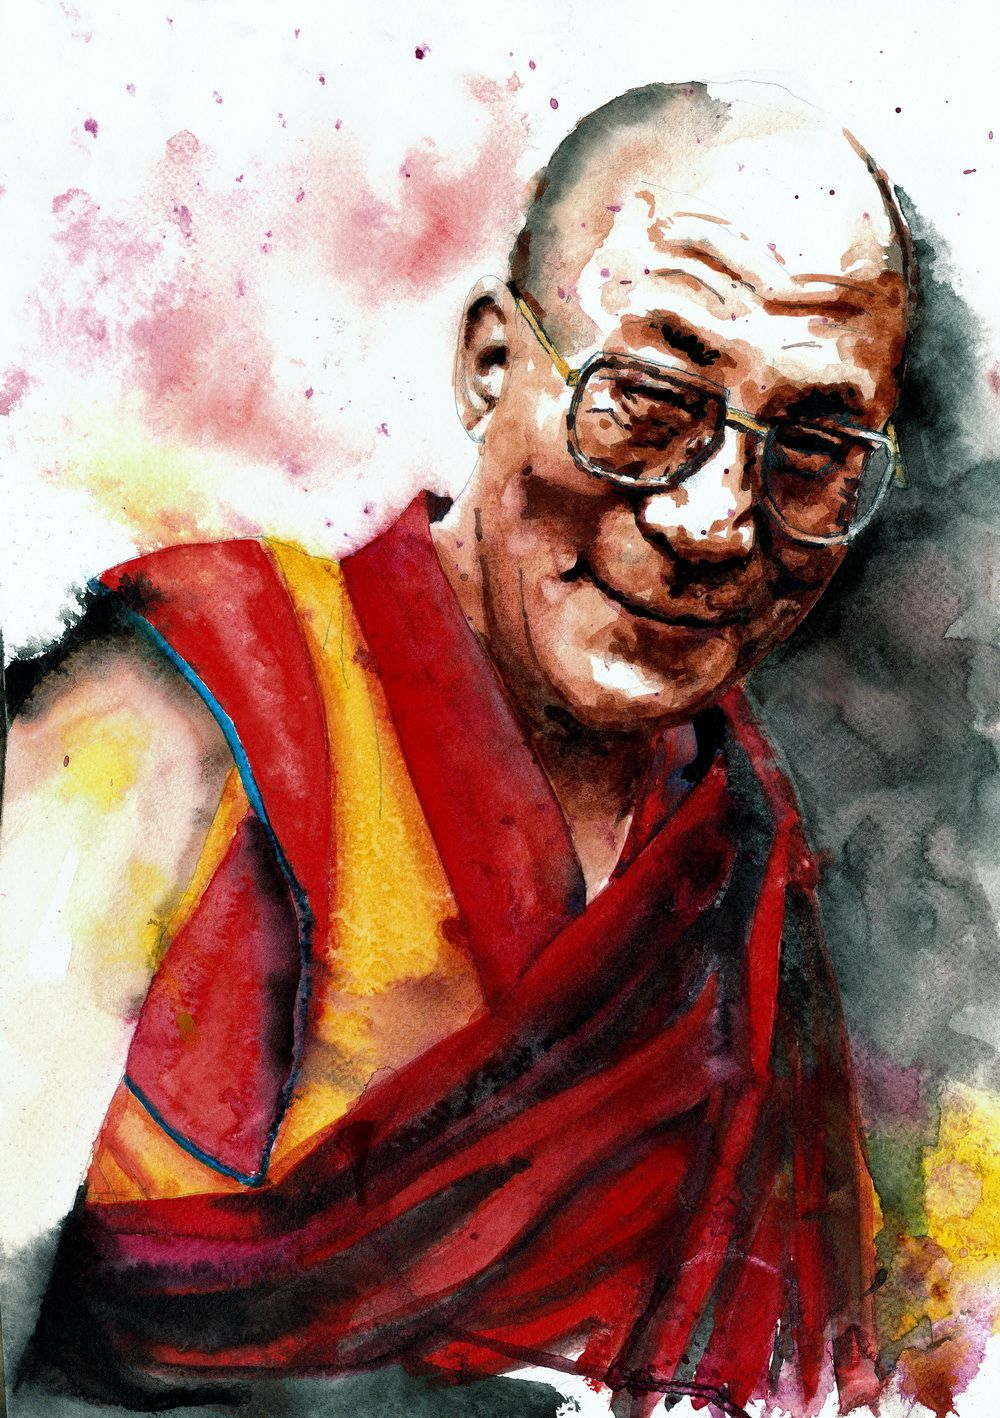 Living the Compassionate Life His Holiness the 14th Dalai Lama, Tenzin  Gyatso As human beings we all have the potential to be happ… | Art,  Buddhist art, Dalai lama